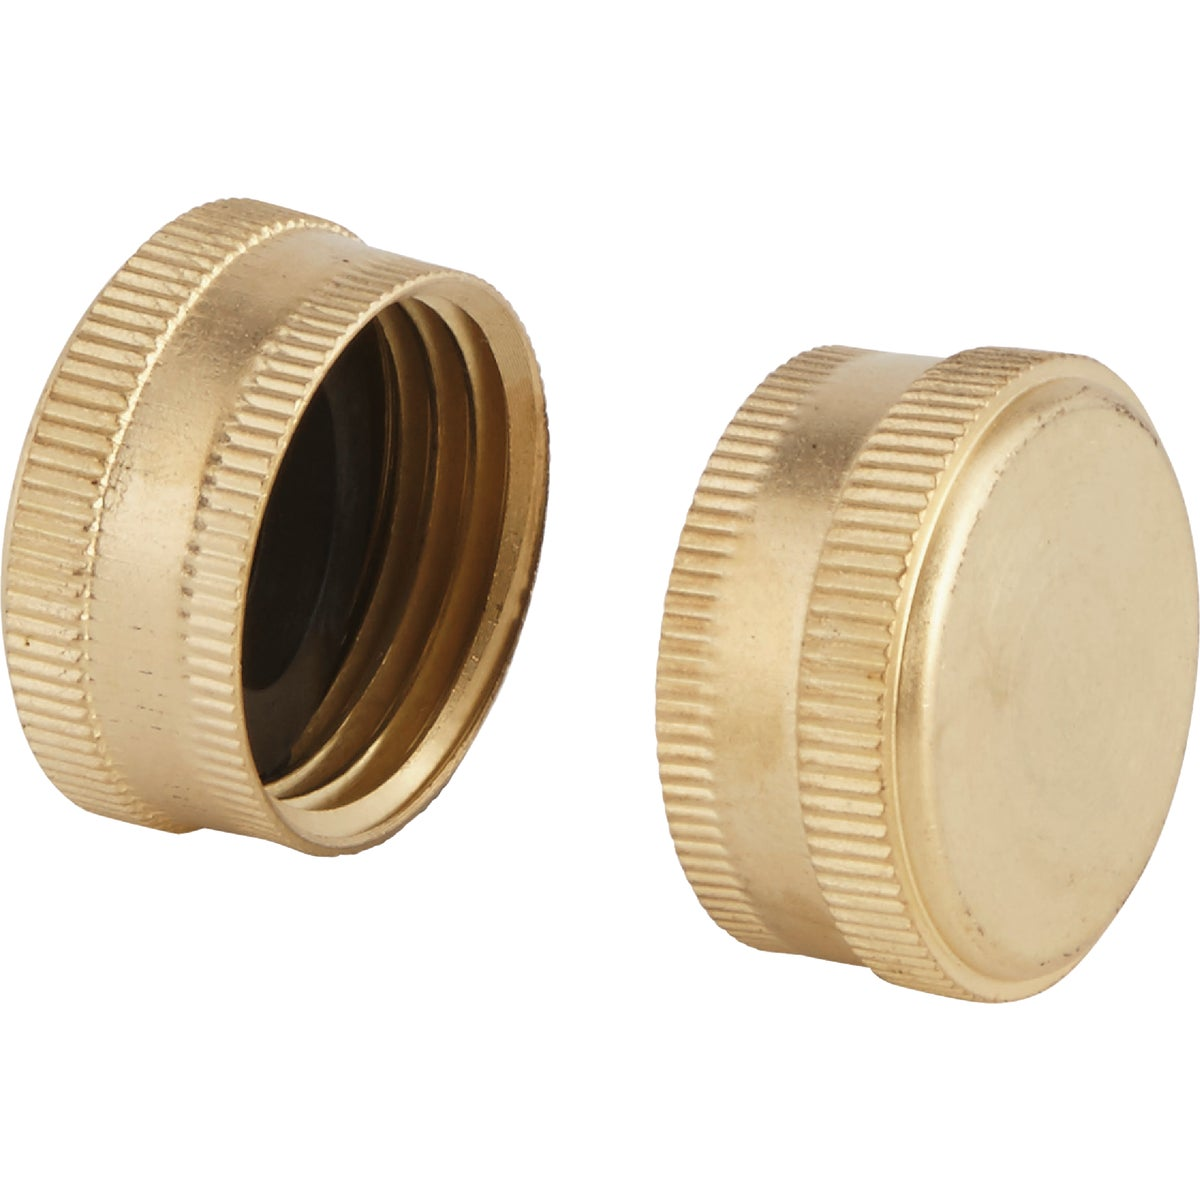 BRASS END CAP - DIB05HCC by Bosch G W